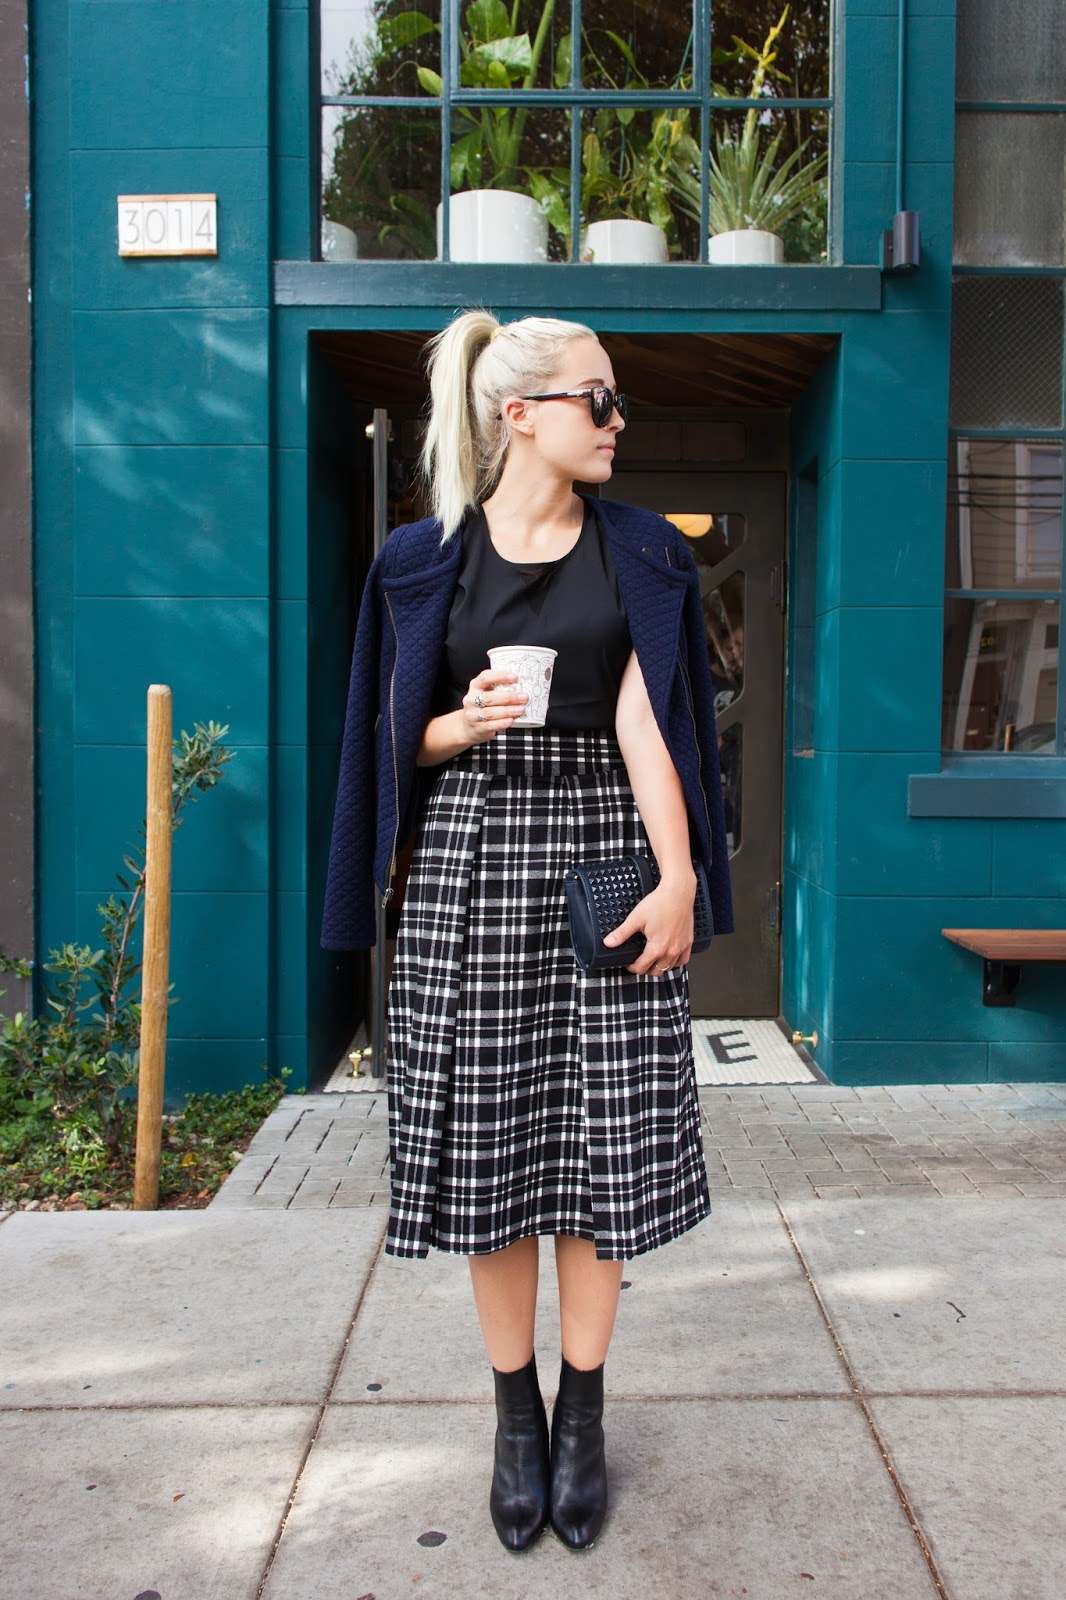 French Connection Blouse, Sanctuary Jacket and JOA Midi Skirt from LE TOTE on San Francisco Style Blogger Bryn Newman of Stone Fox Style